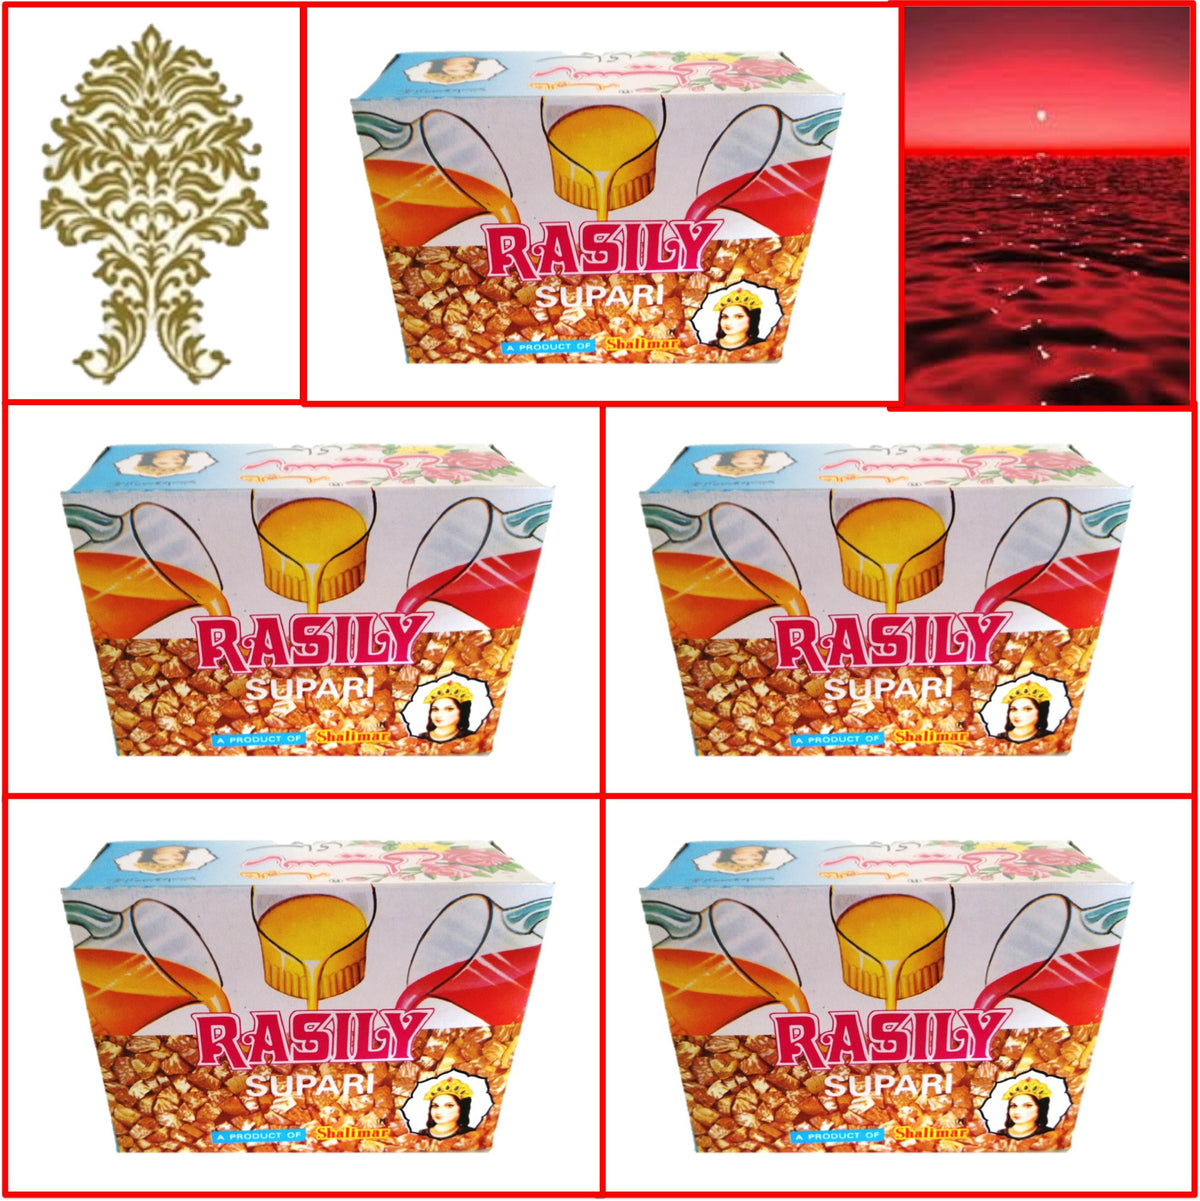 5 Packs. Shalimar Rasily Supari Pack. 48 pouches 96g. Export Quality!!